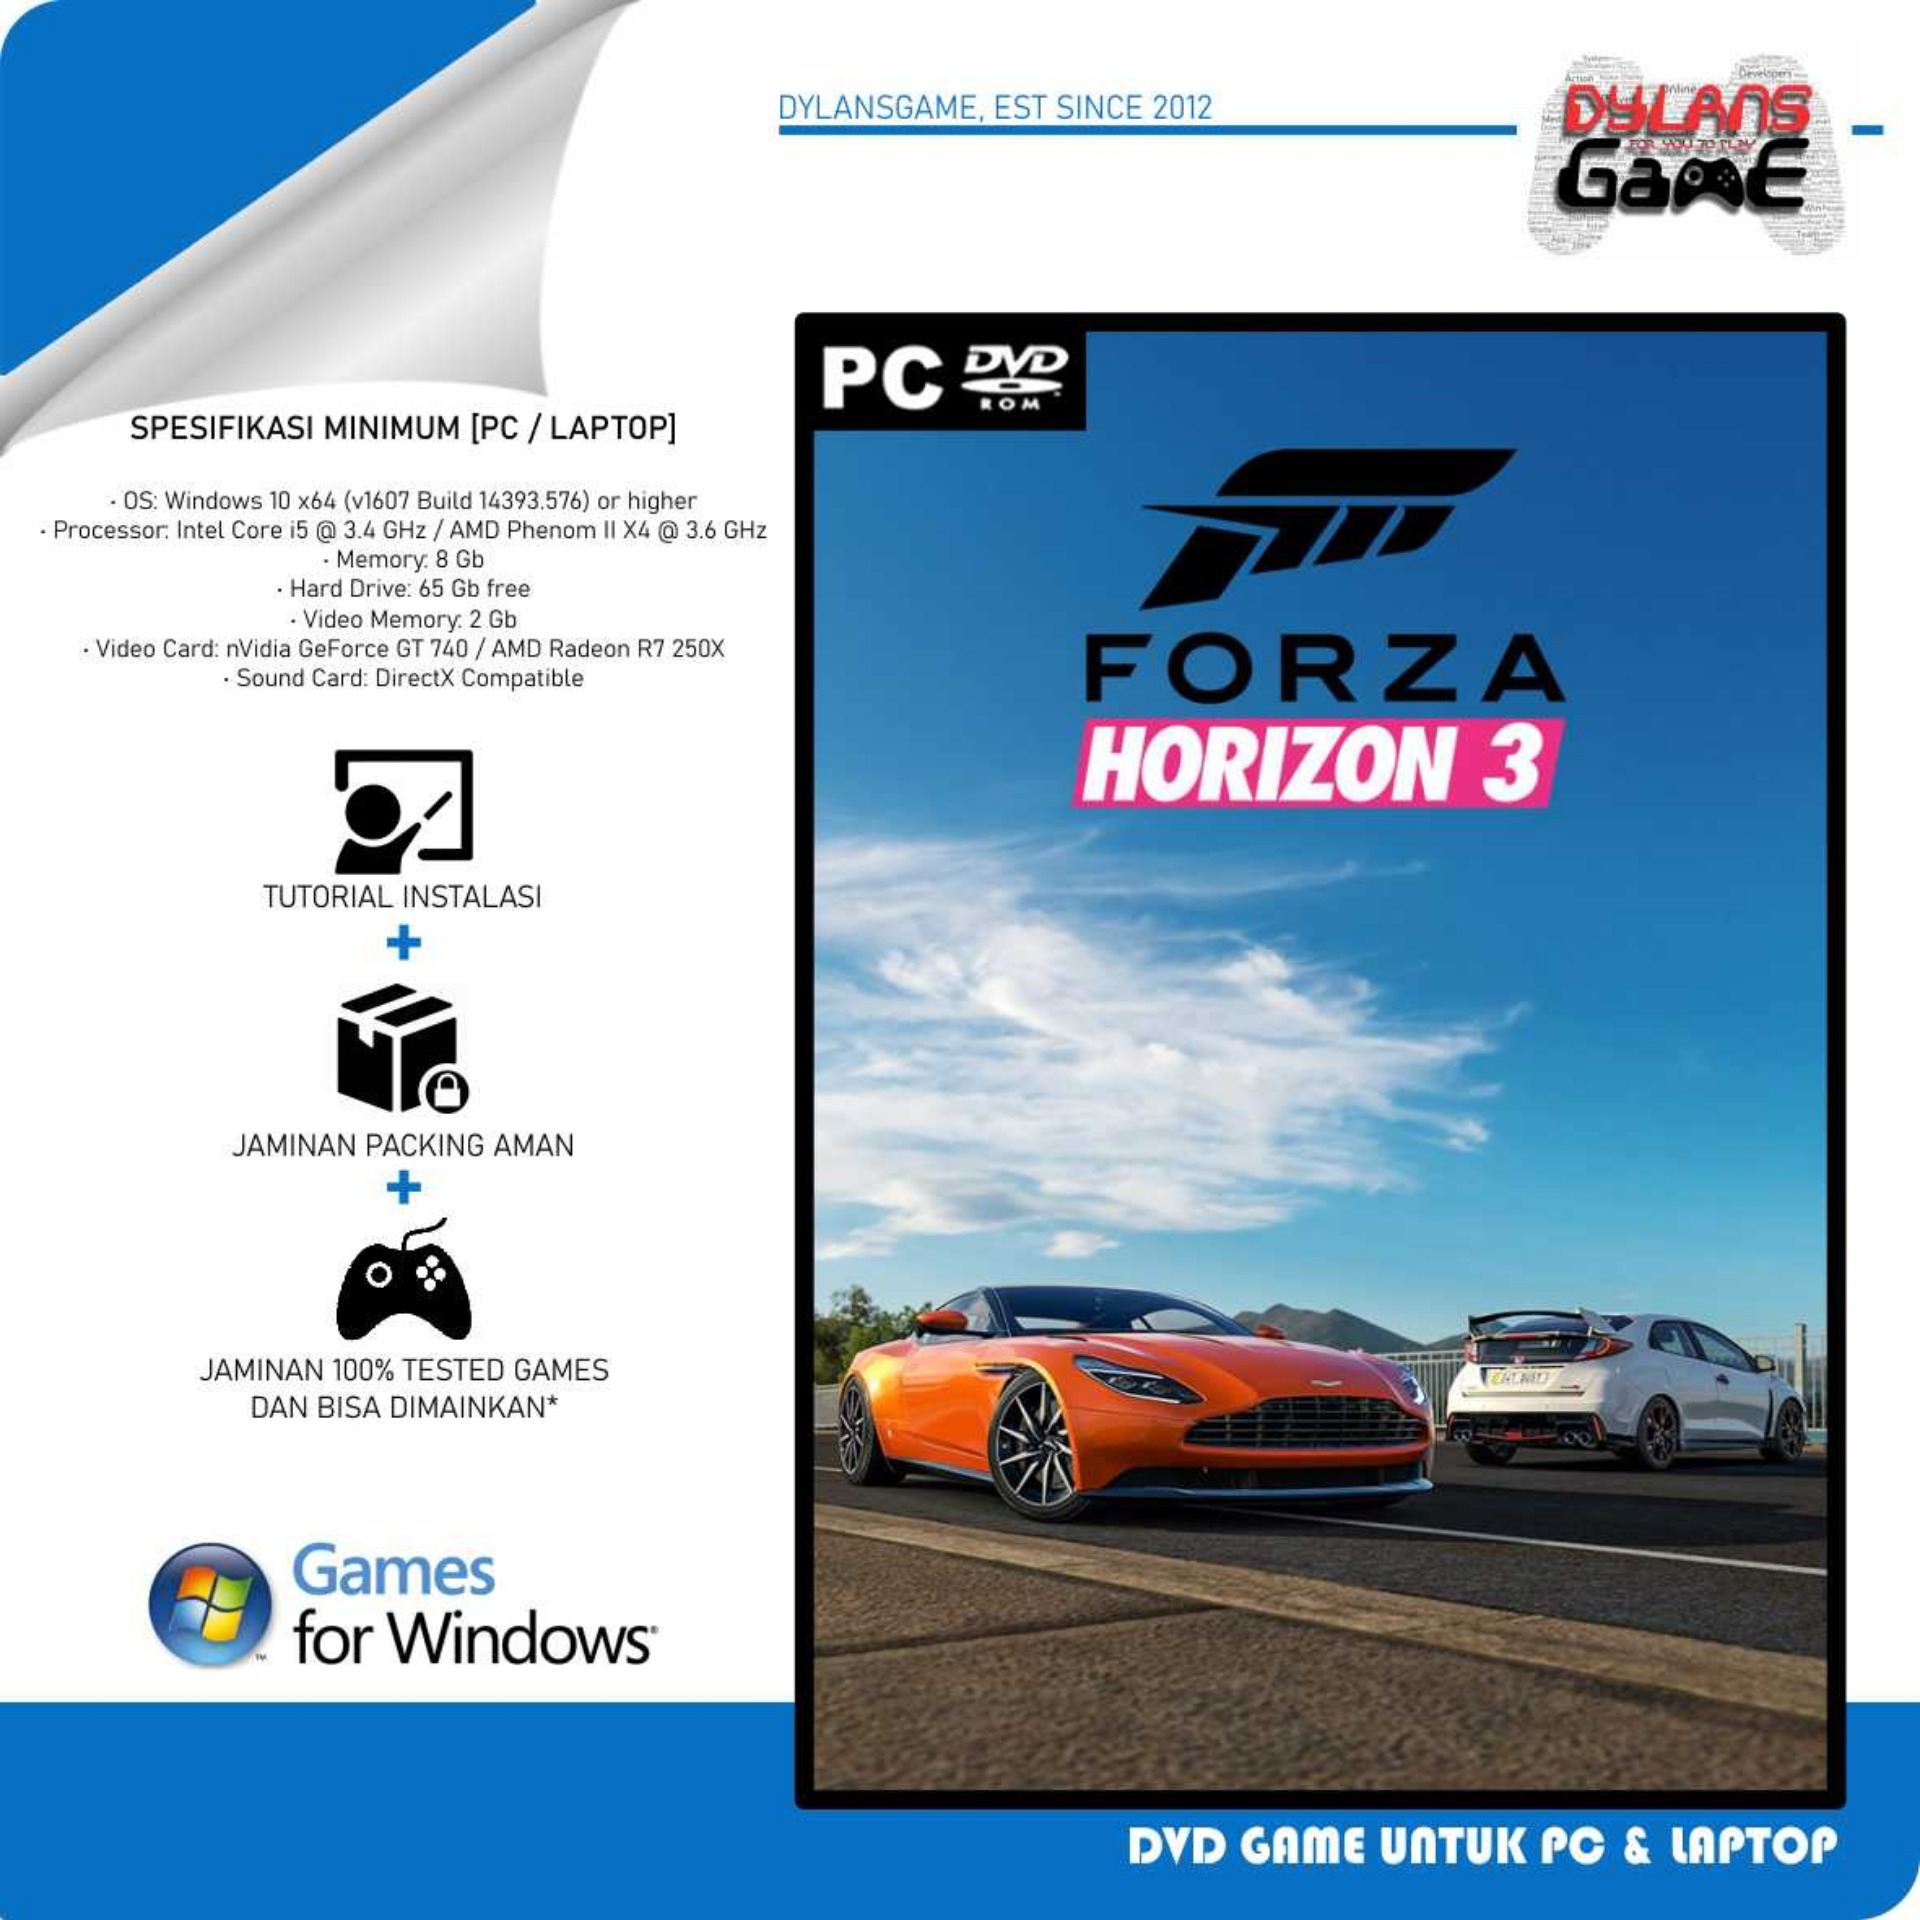 forza horizon 3 pc games dvd game laptop cd game pc